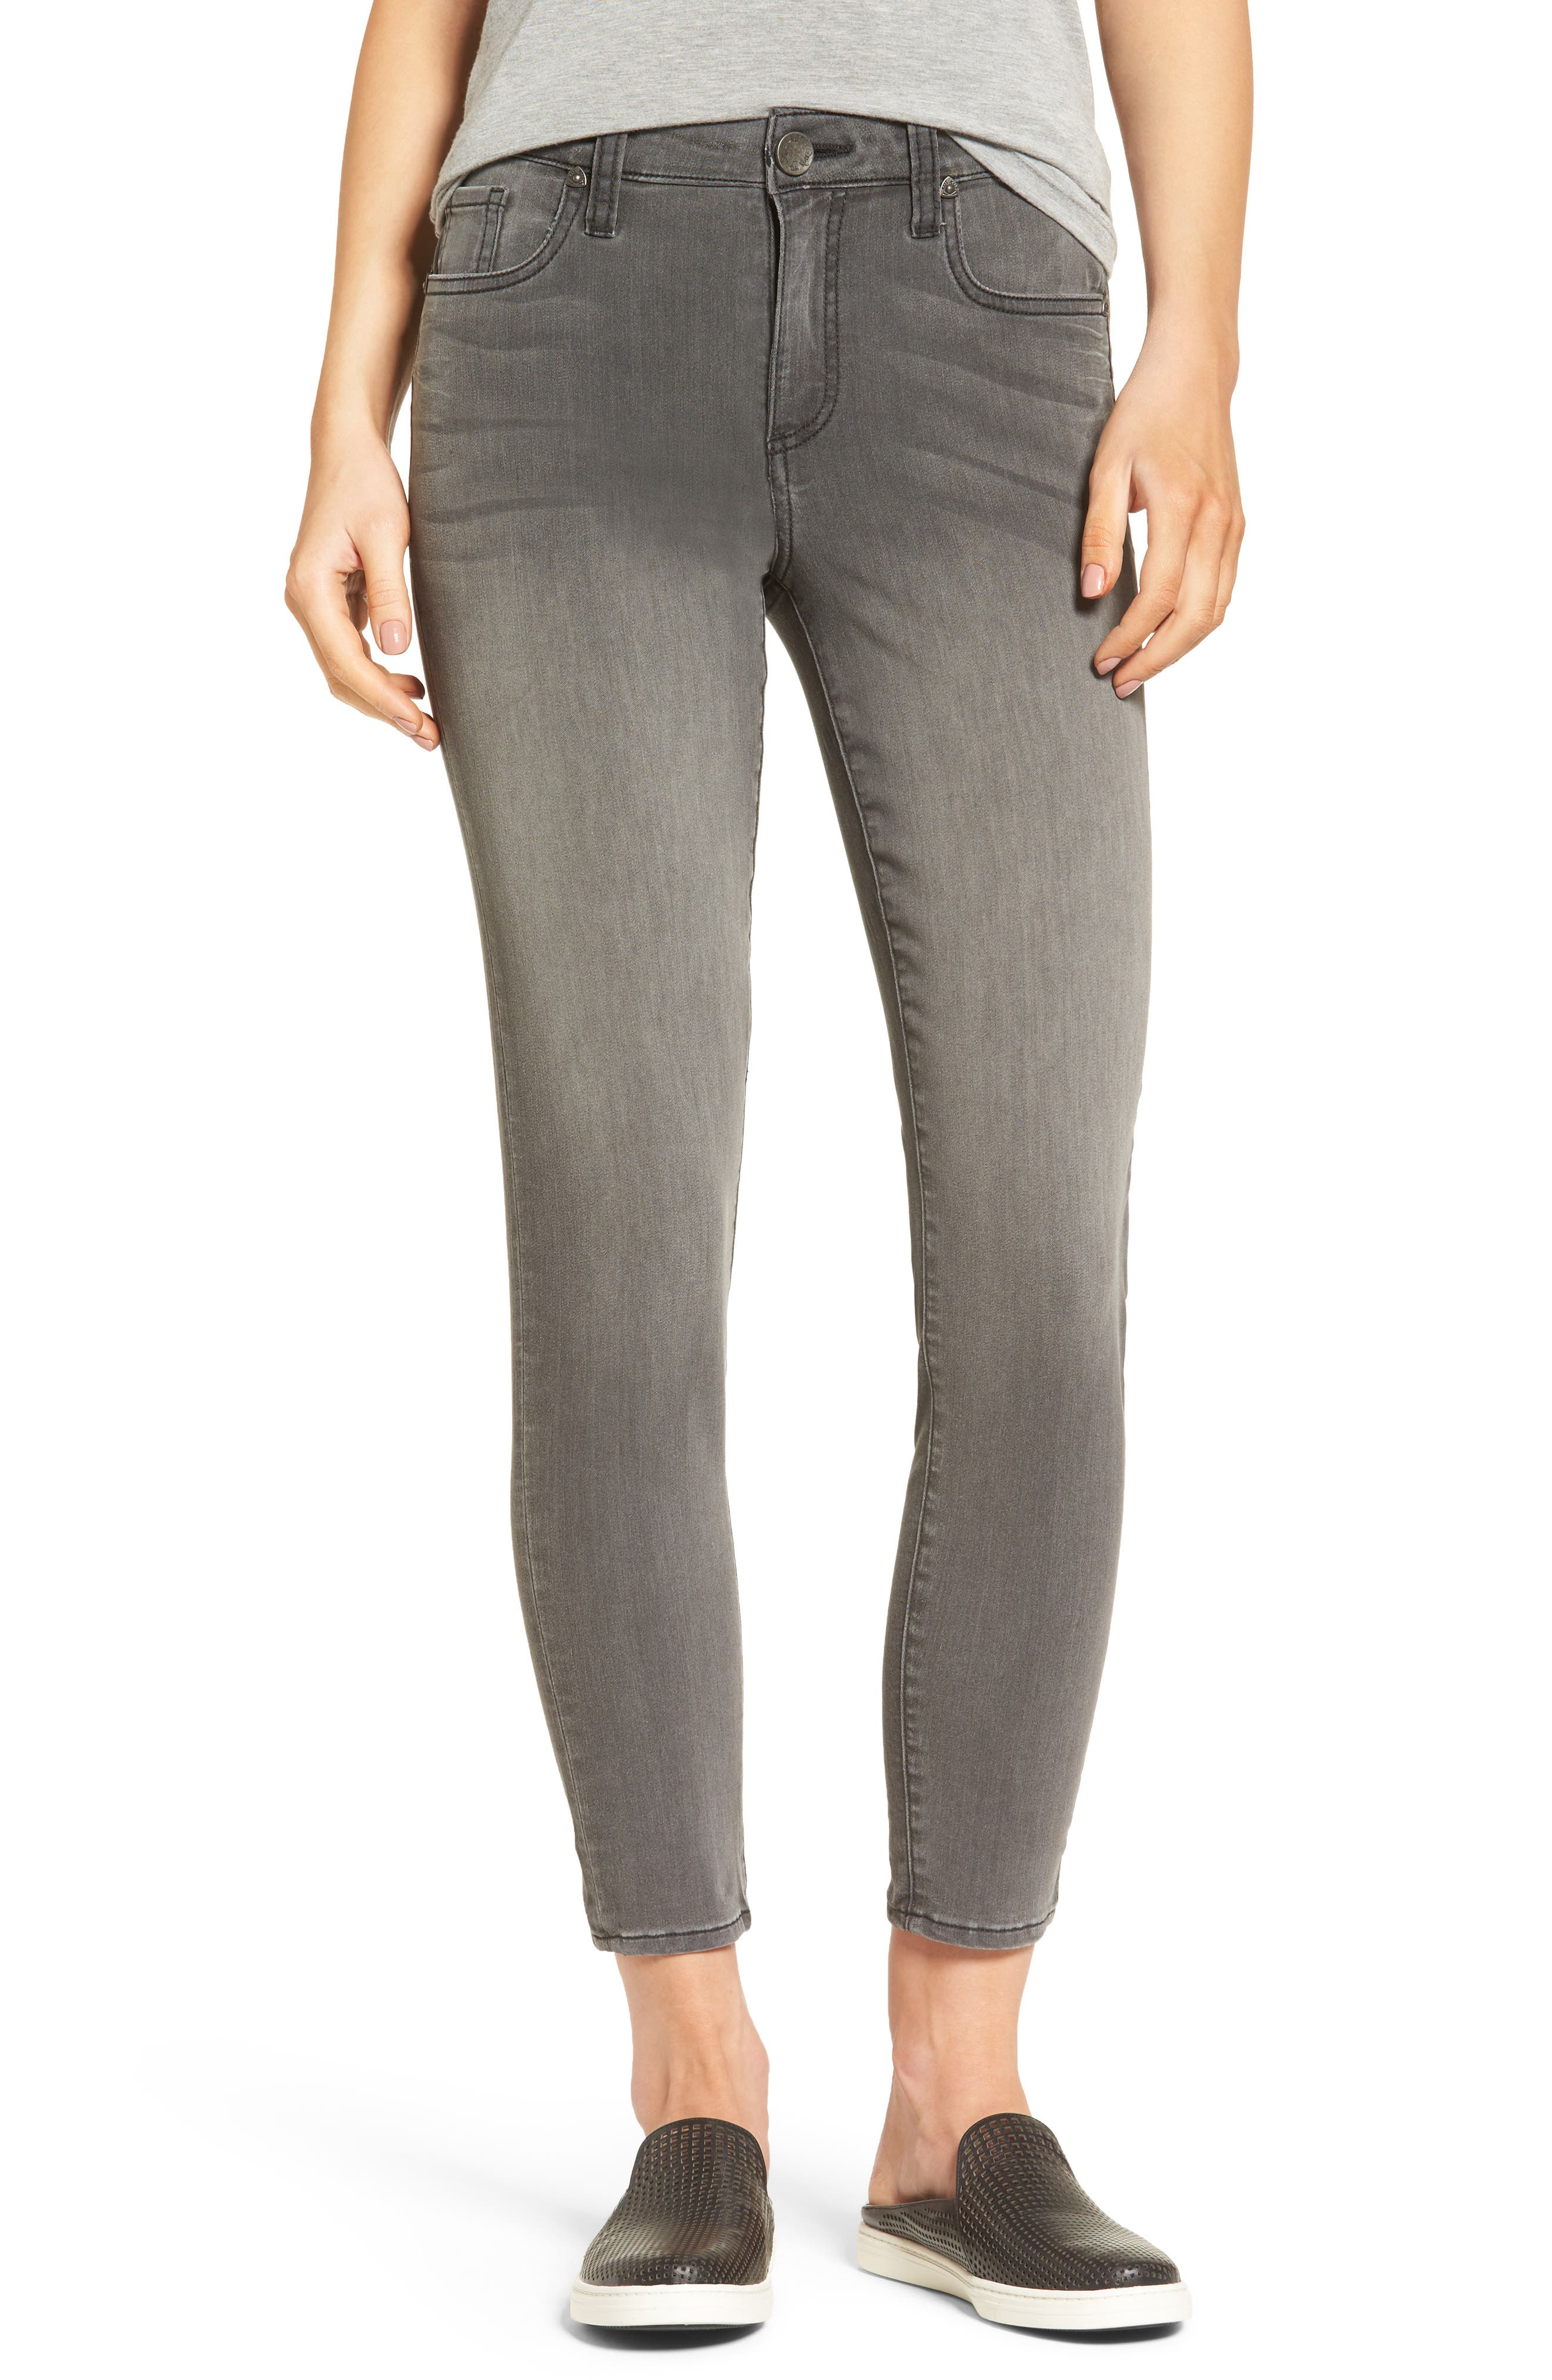 KUT from the Kloth Donna Skinny Ankle Jeans (Meritorious) (Regular & Petite)